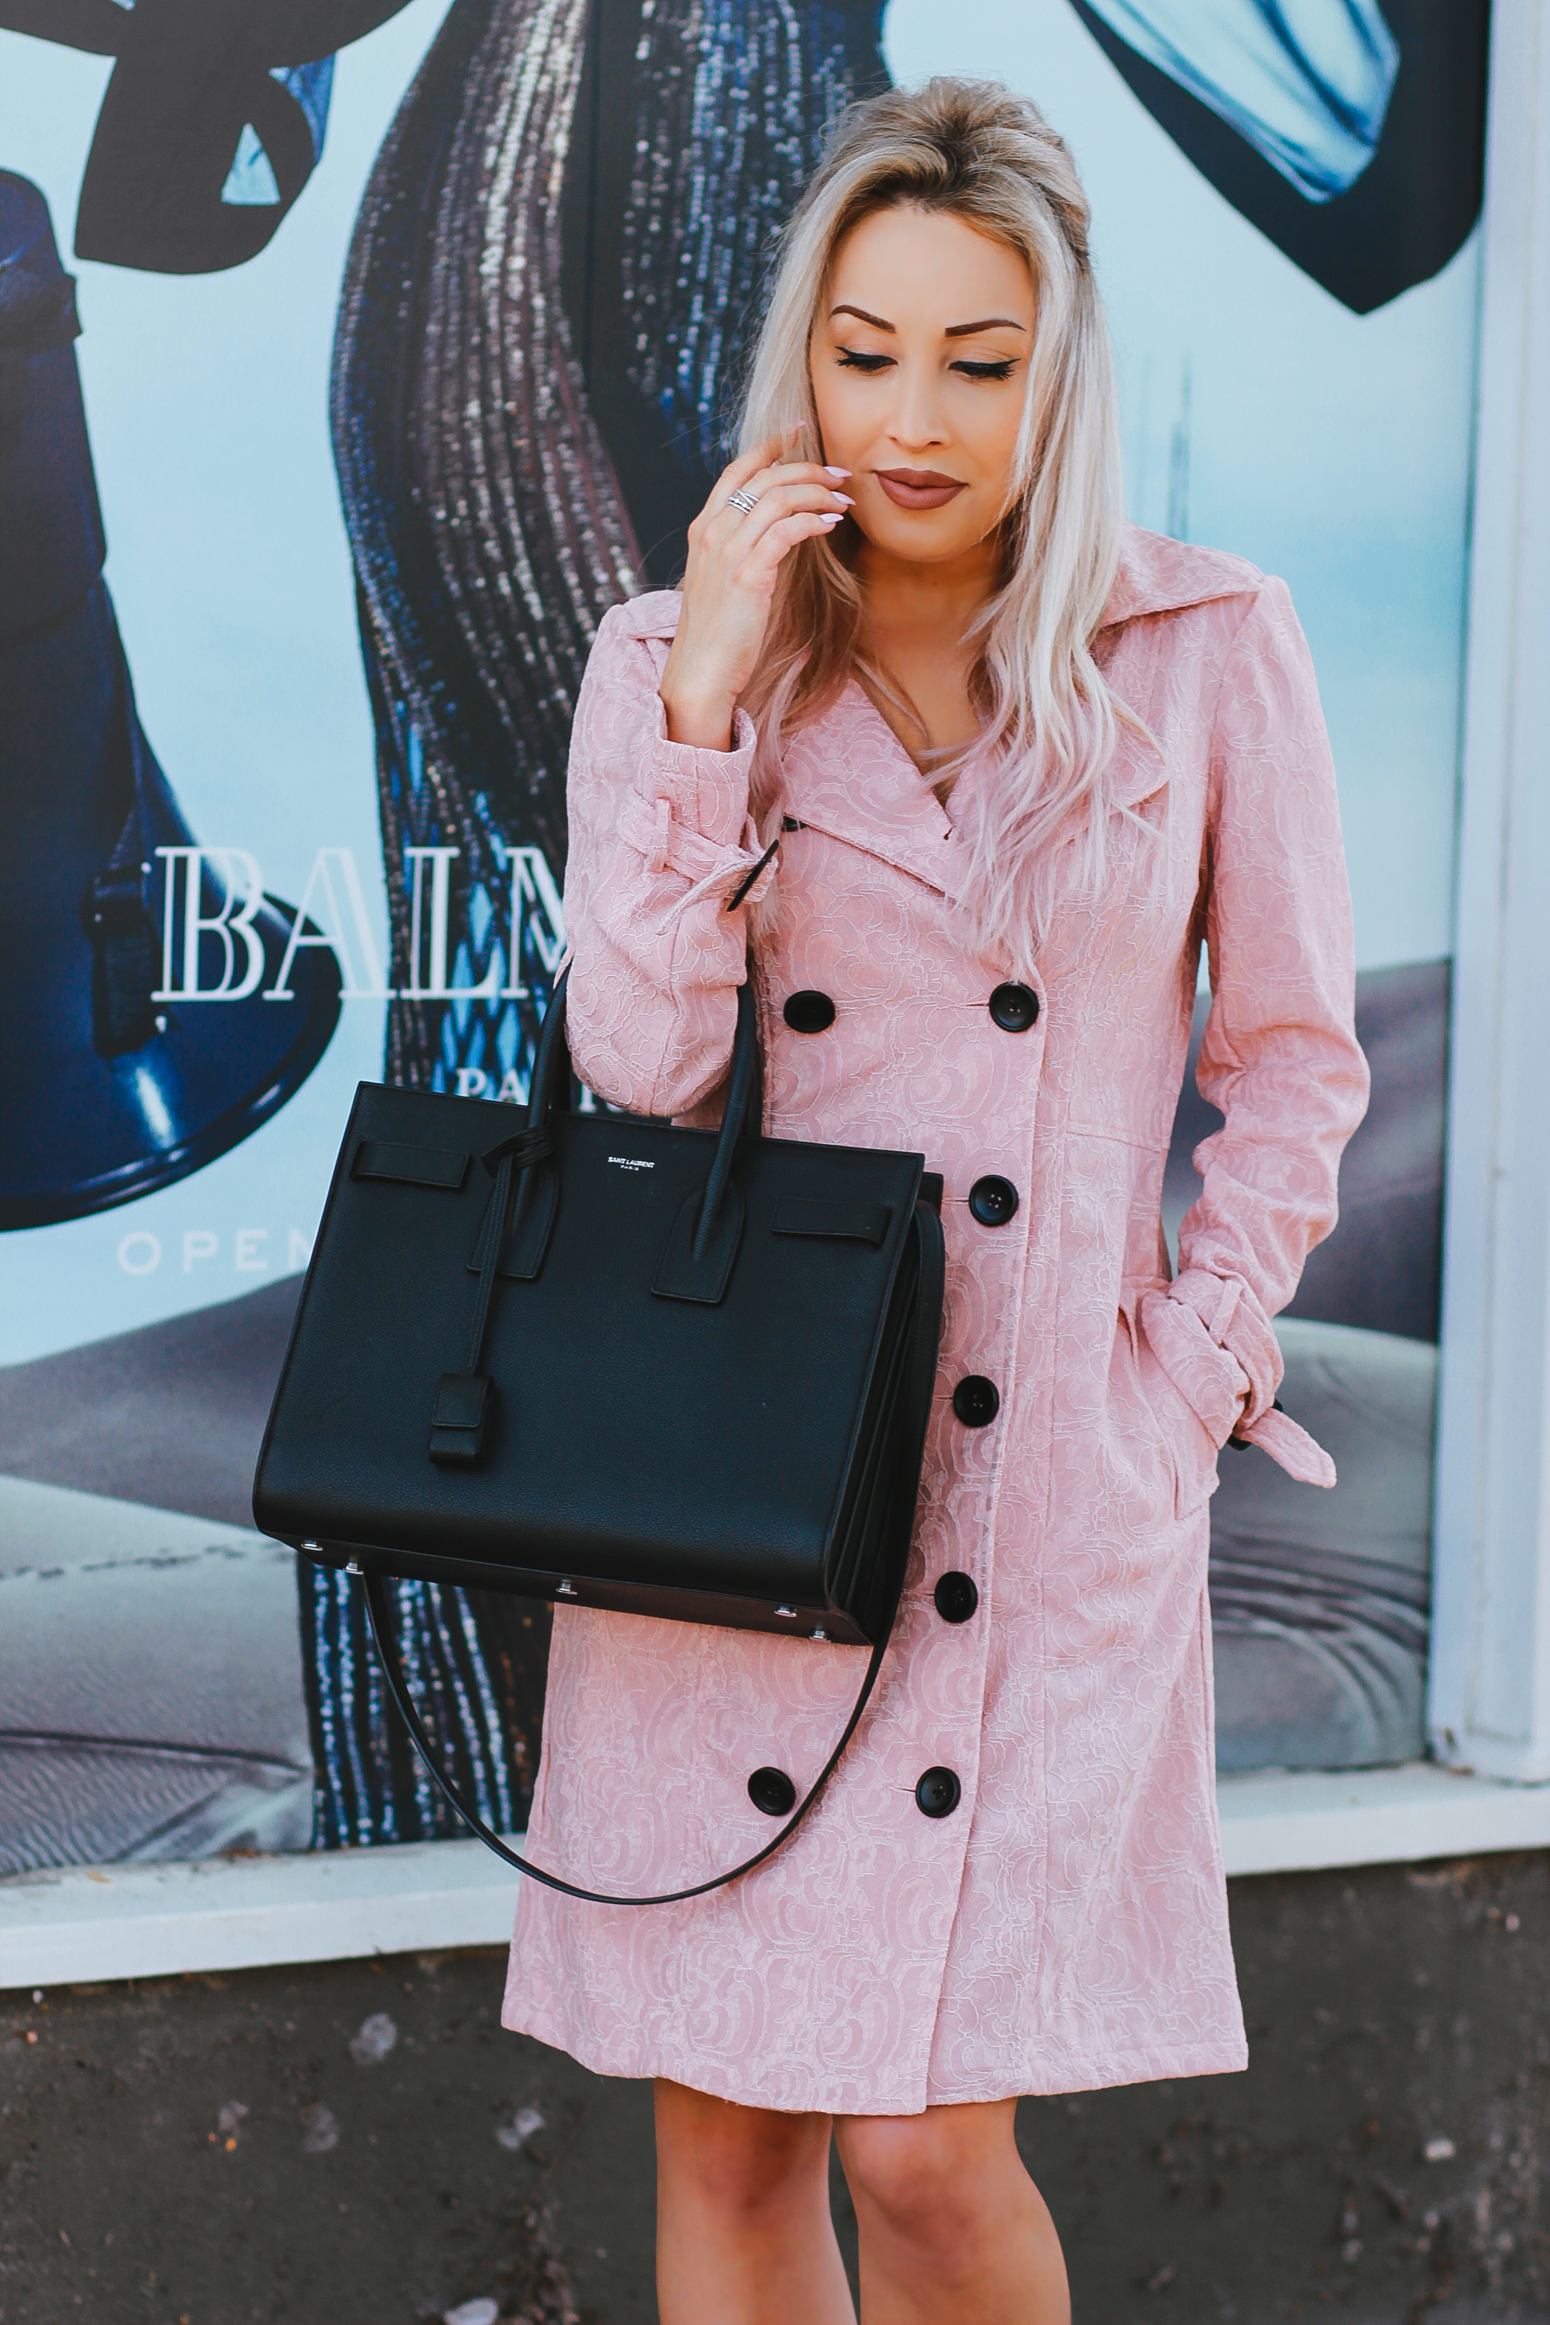 Blondie in the City |Pink Trench Coat | Pink Velvet Boots | Black YSL Bag